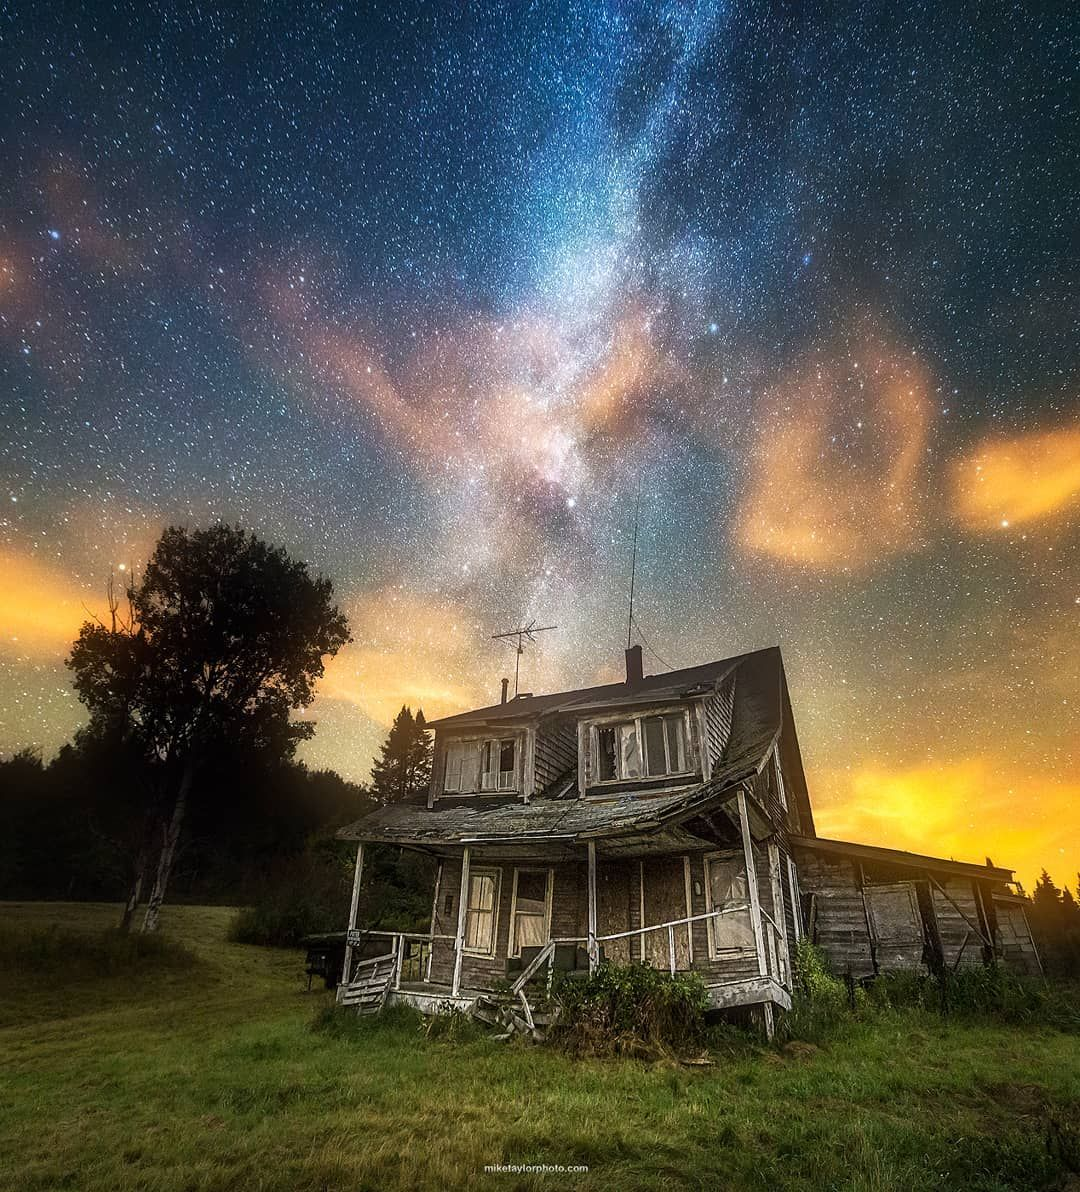 Taylor Photography On Instagram Come Join Us In 2 Weeks To Photograph This Iconic Dilapidated House Duri Landscape Astrophotography London Street Photography